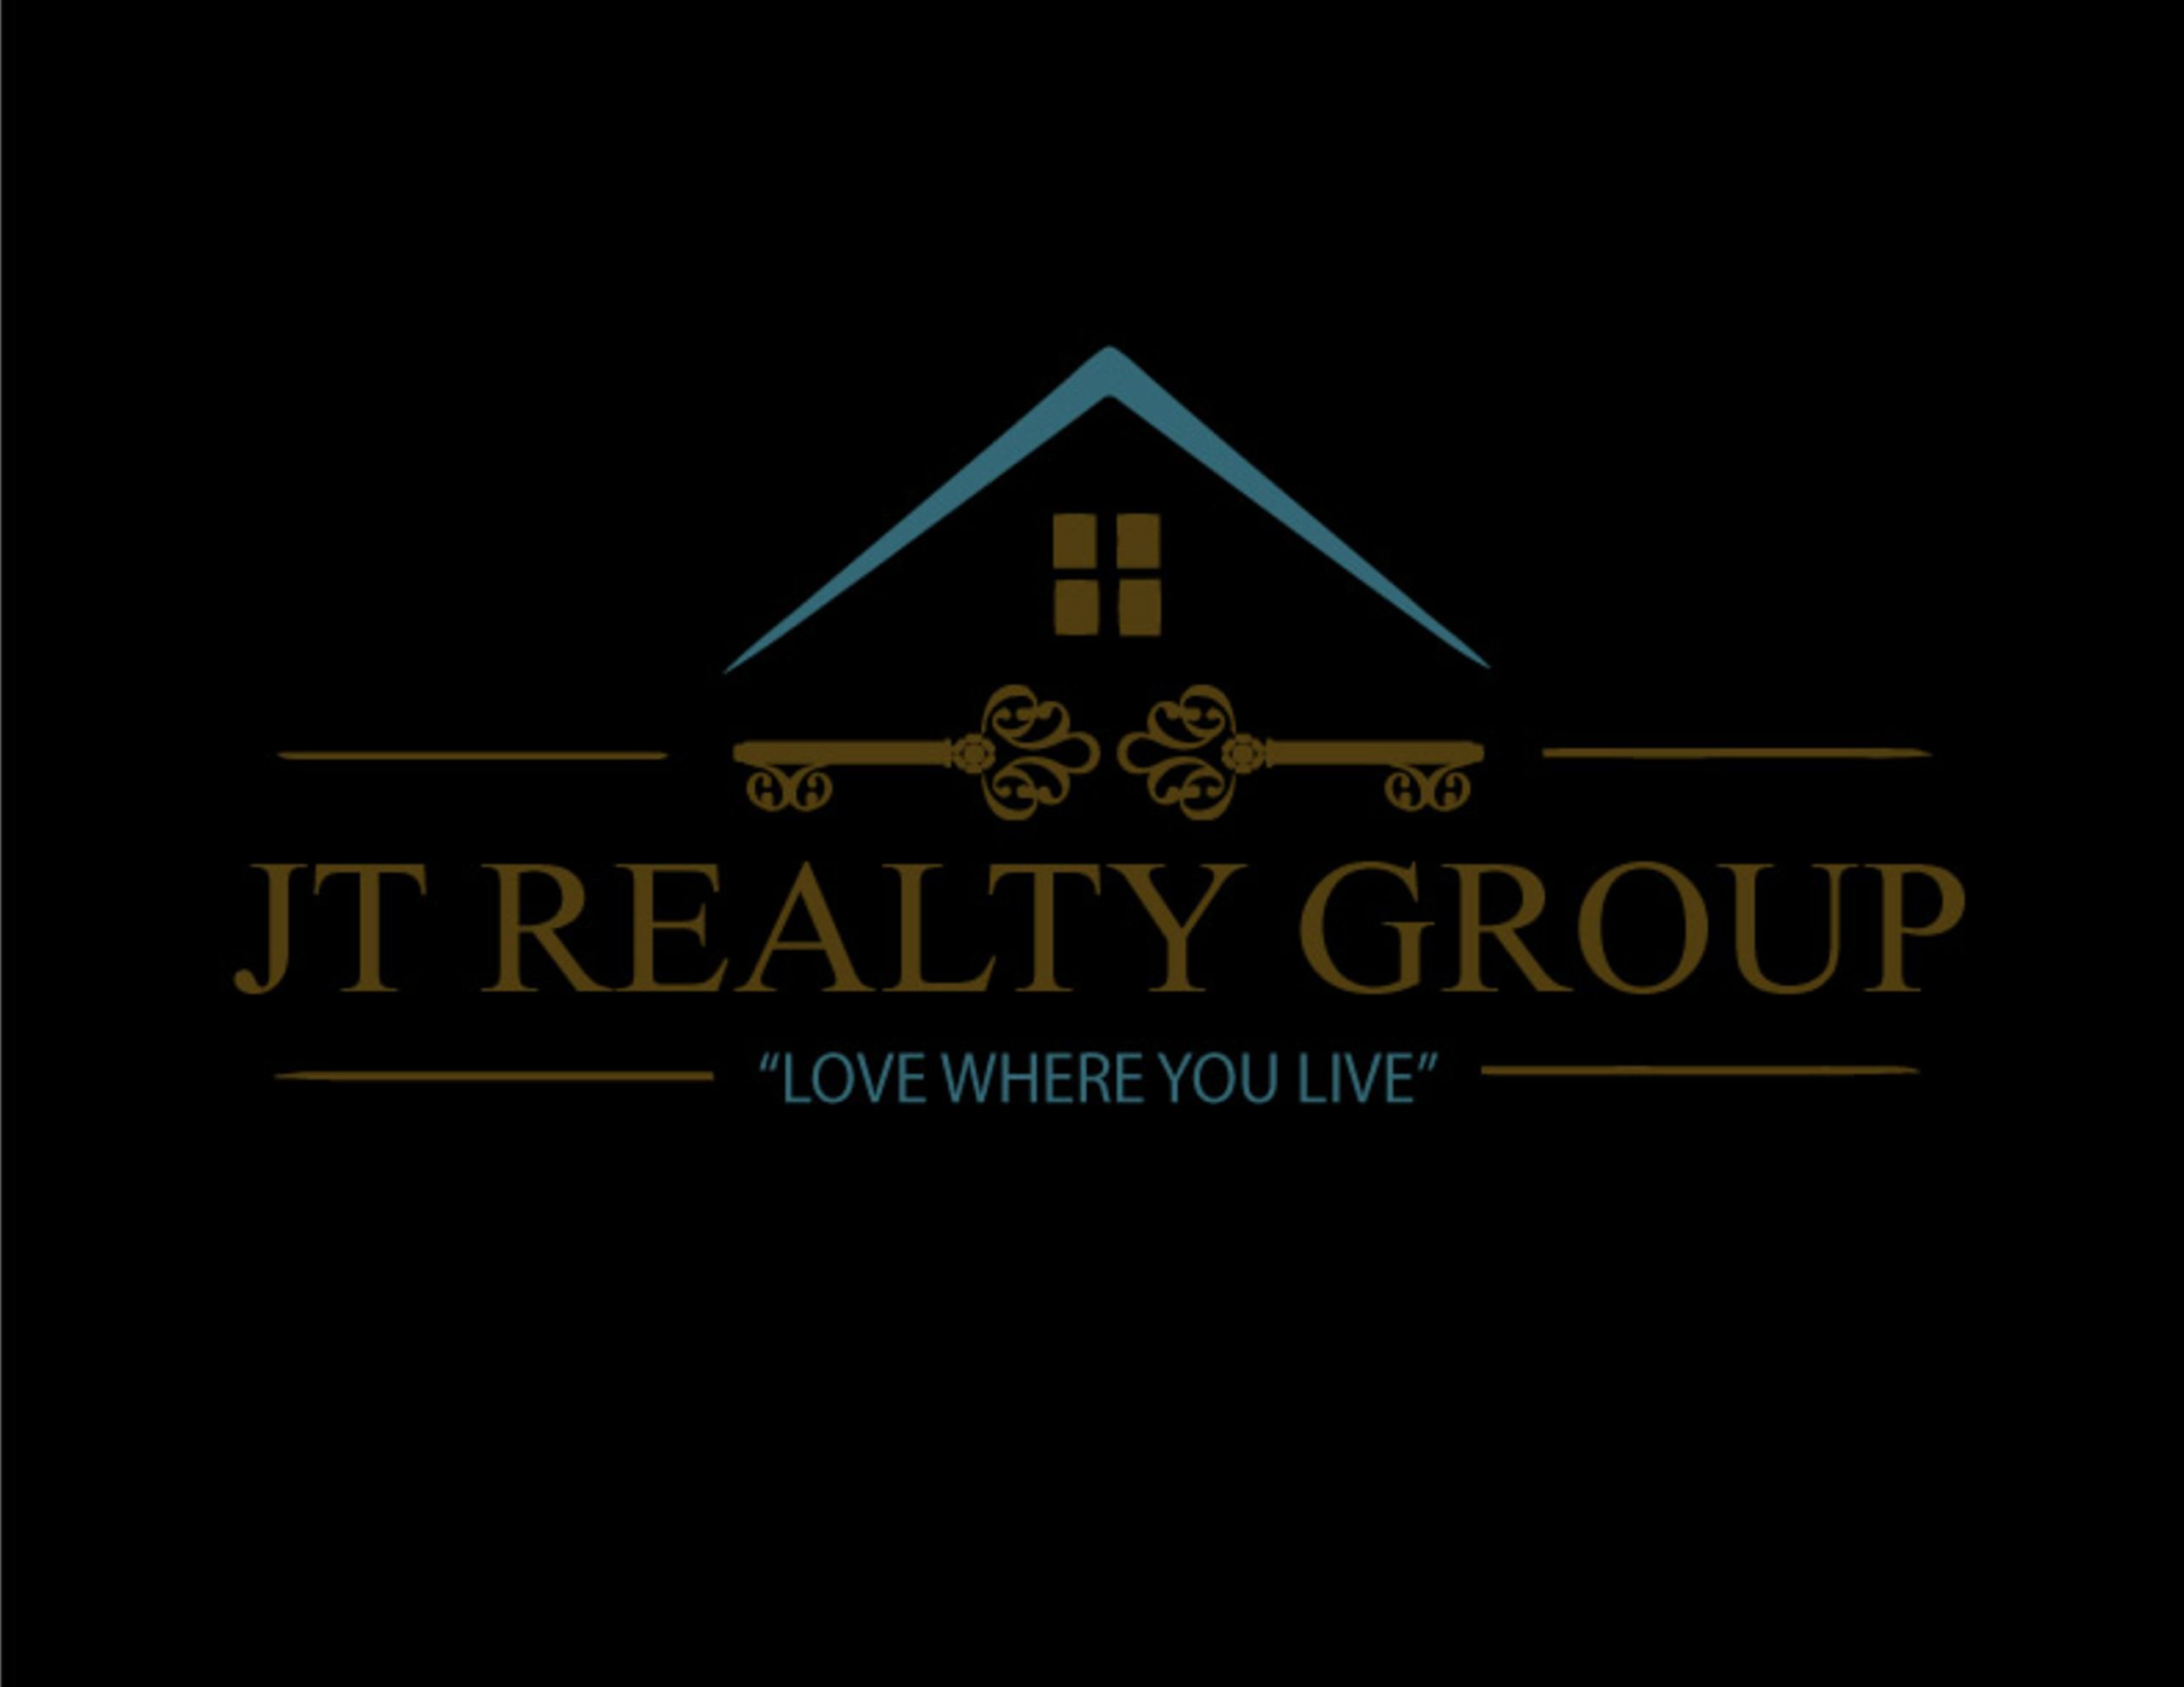 LET JT REALTY GROUP DO THE WORK FOR YOU!